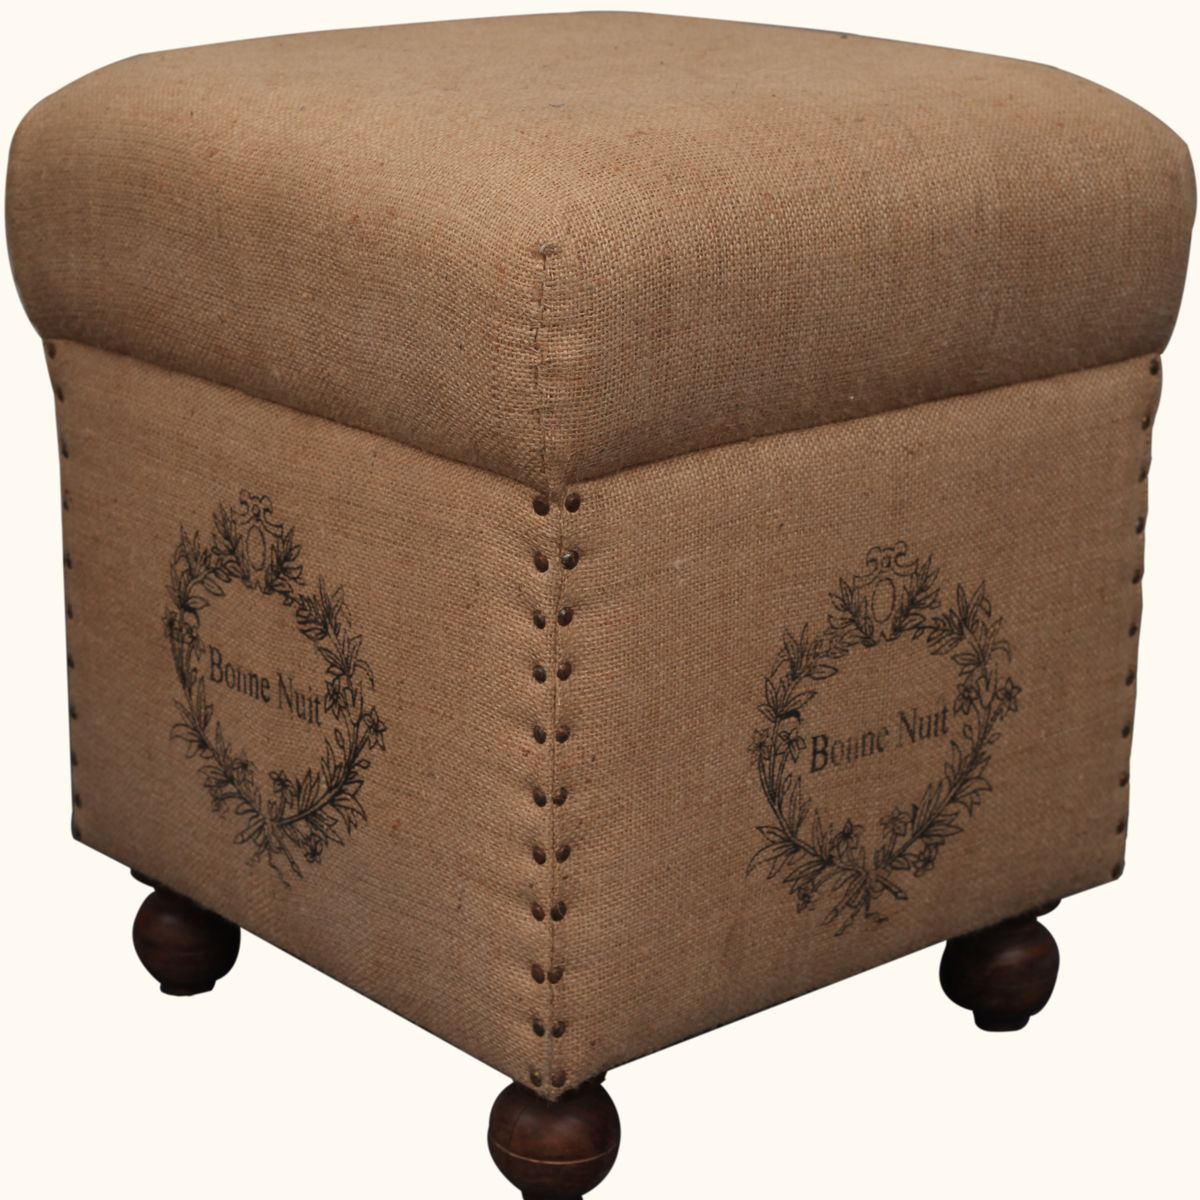 Burlap Upholstered Solid Wood Footrest Hassock Stool Solid Wood Foot Rest Wood